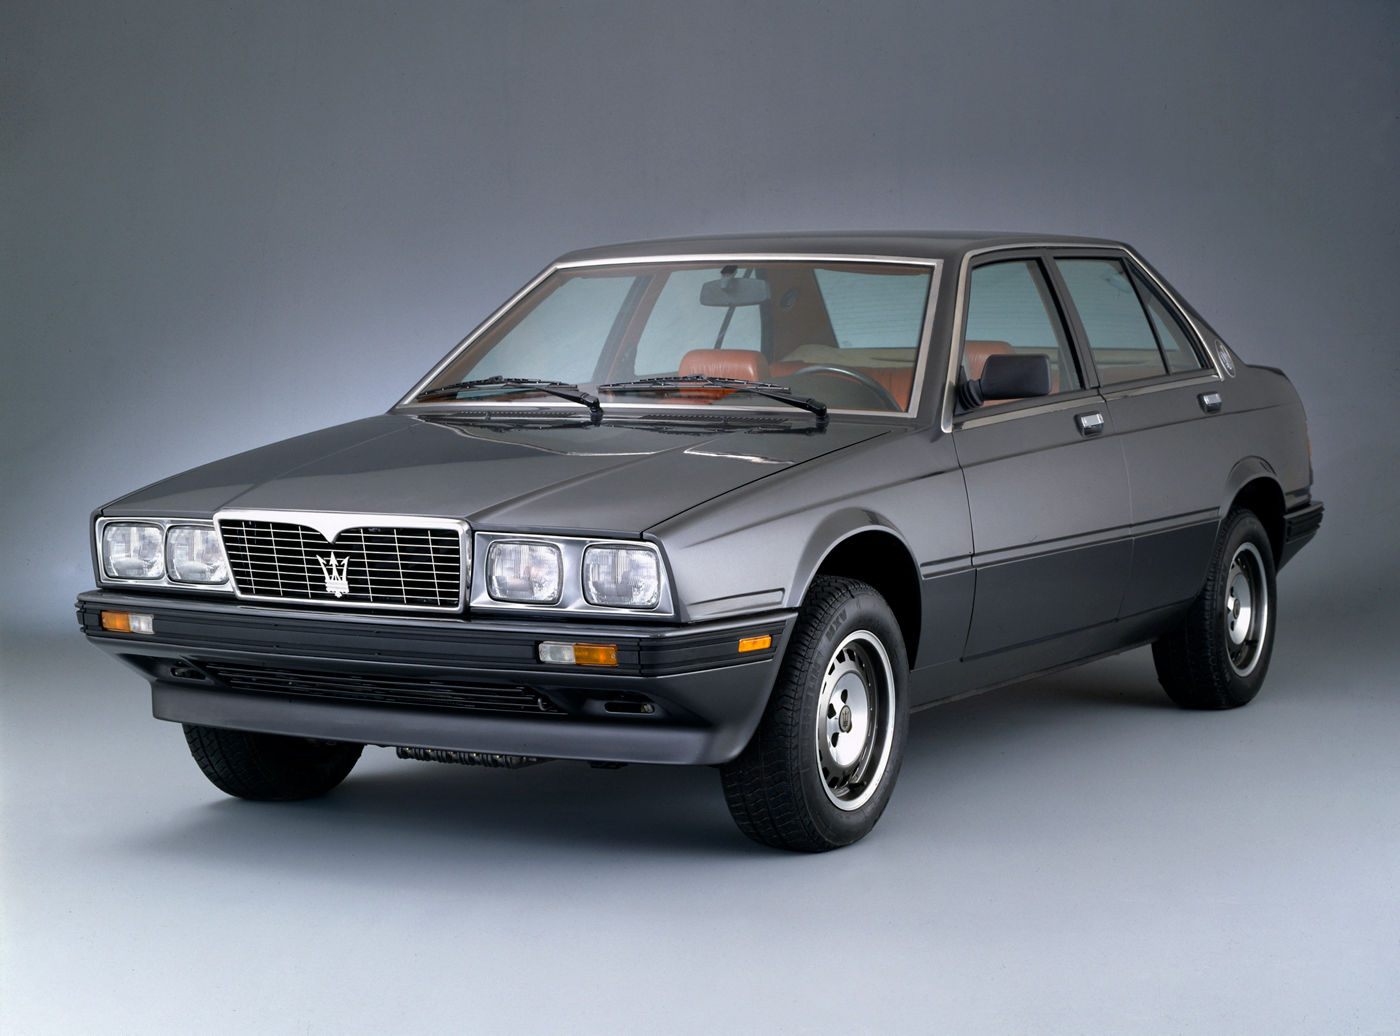 1985 Maserati 420 - exterior view of the classic model in gray